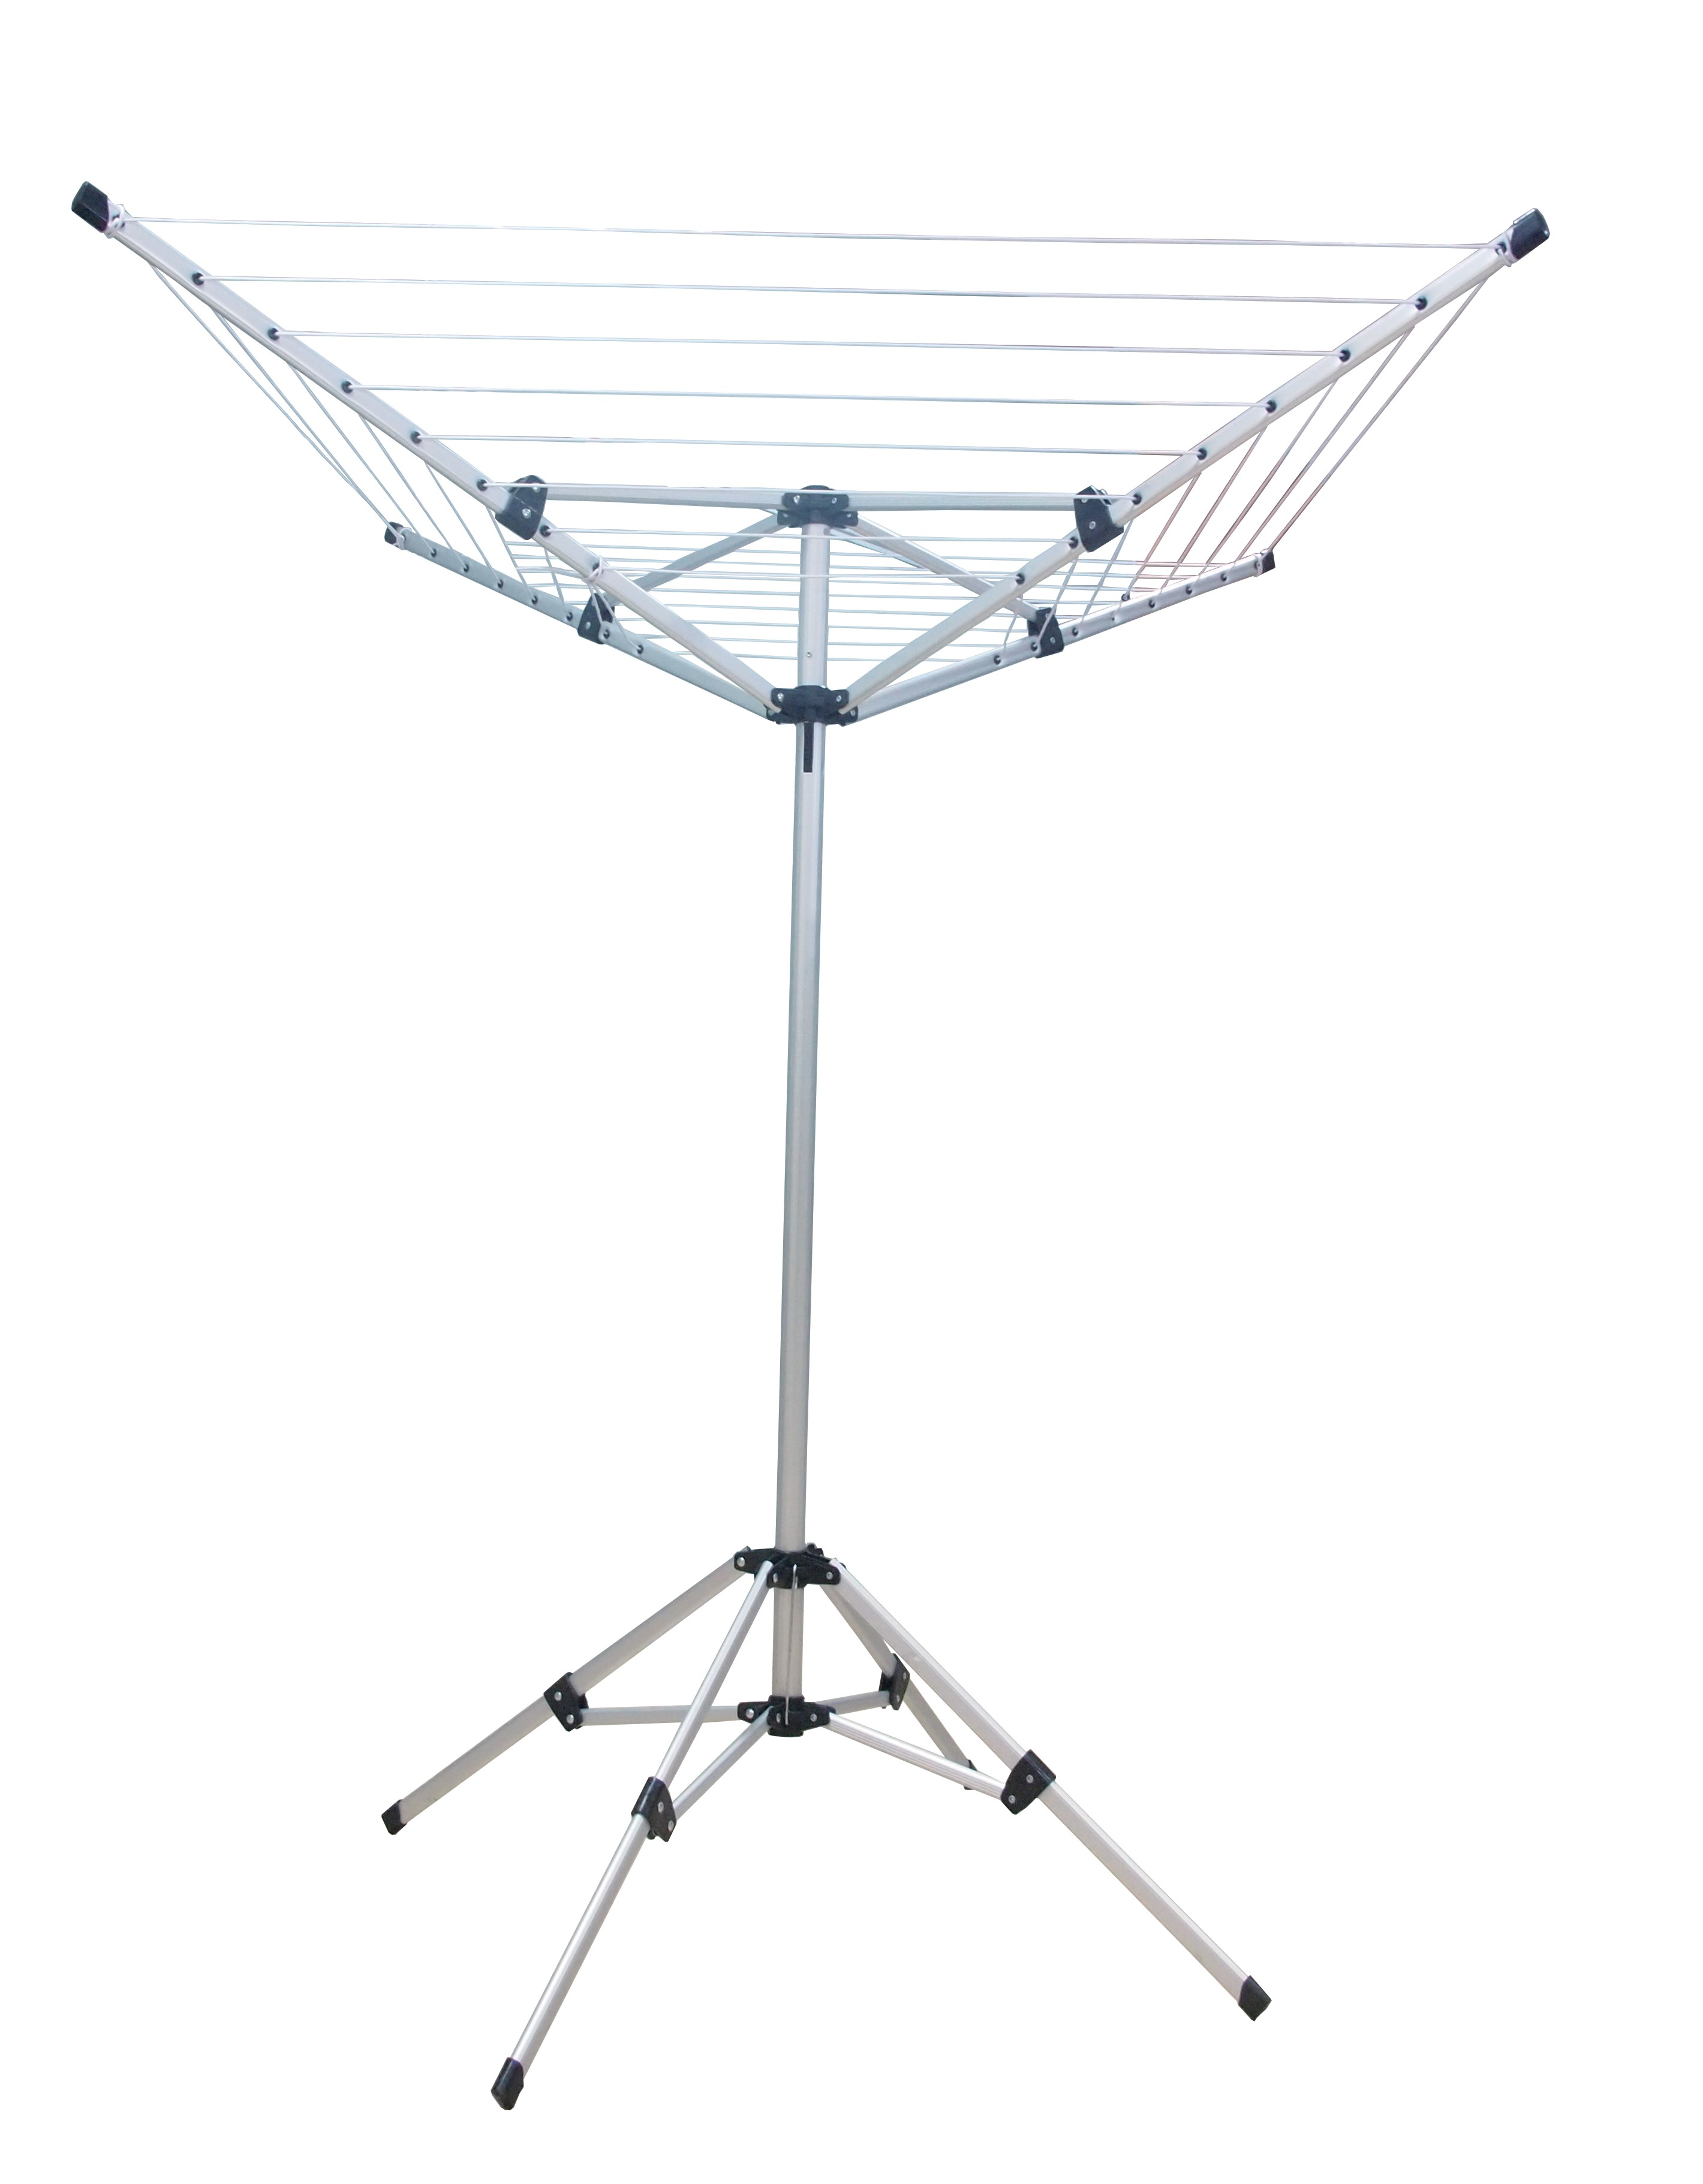 Outwell lightweight aluminium rotary clothes airer air separator